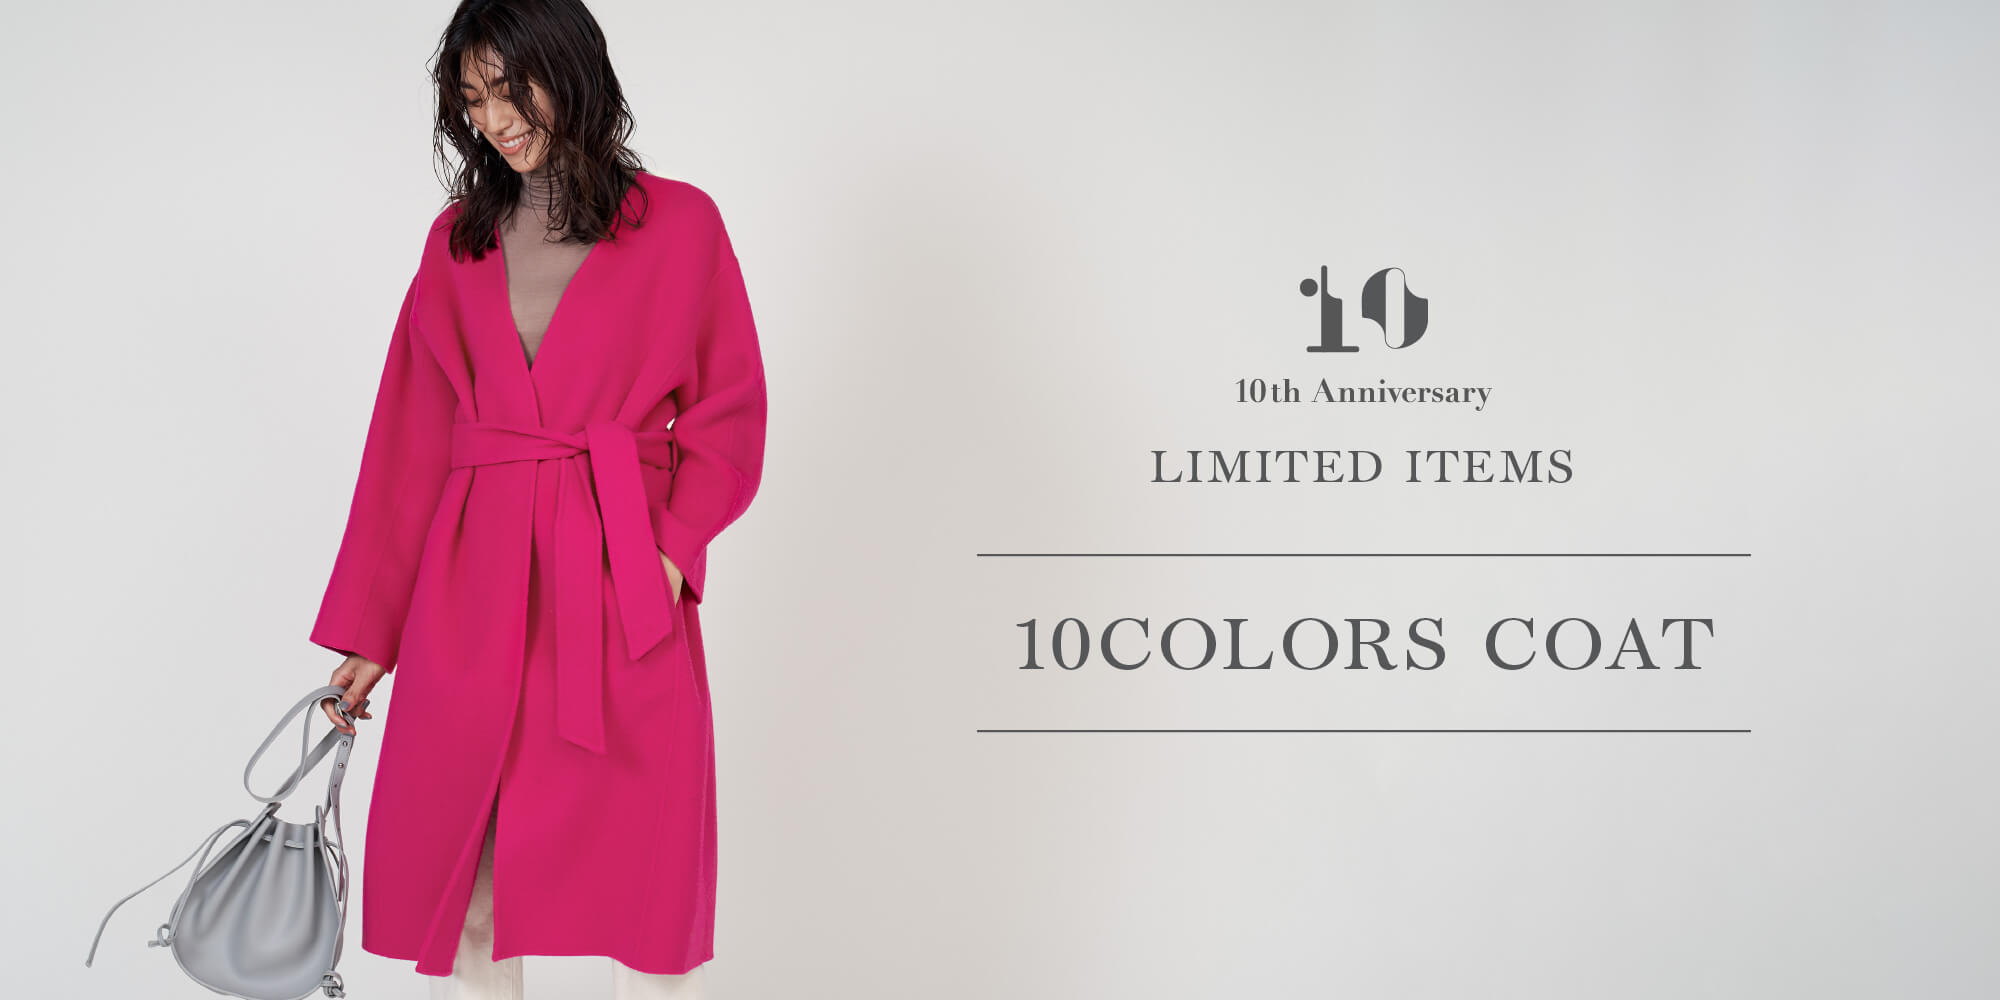 10th ANNIVERSARY LIMITED ITEMS 10COLORS COAT